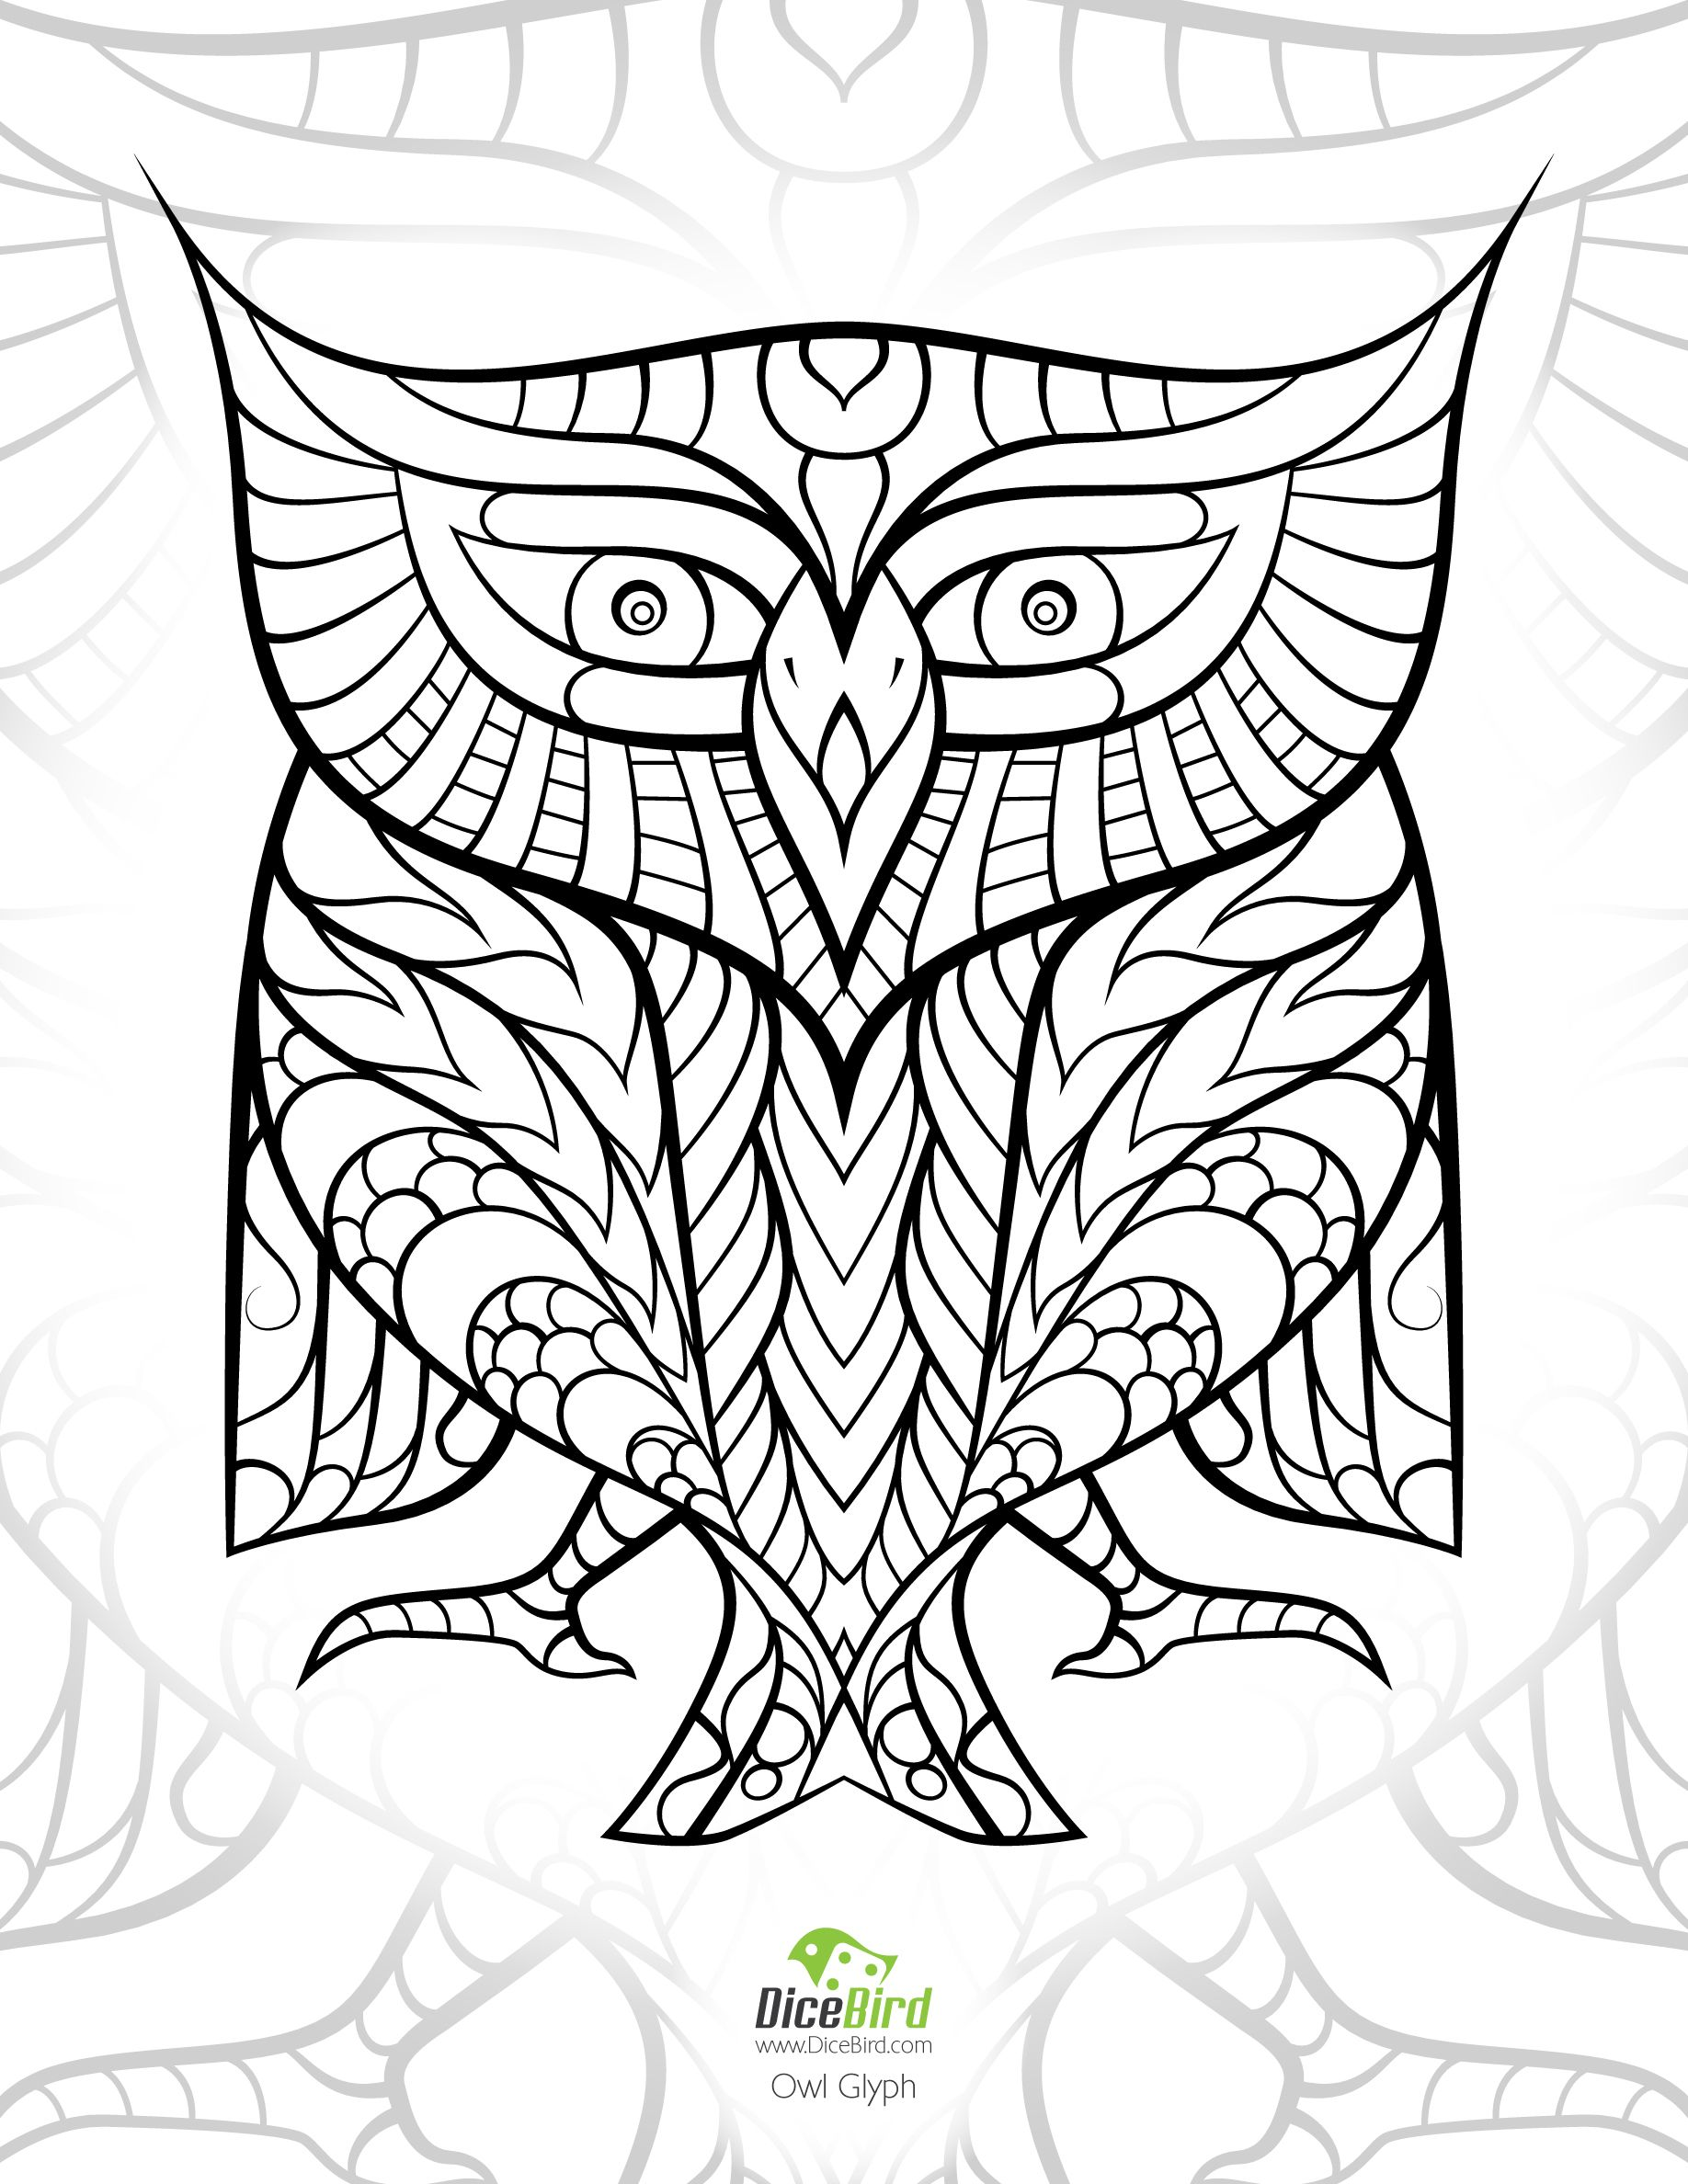 Stress relief coloring pages mandala - Egyptian Hieroglyph Owl Dicebird Com Free Adult Printable Coloring Pages Mandalas Doodles